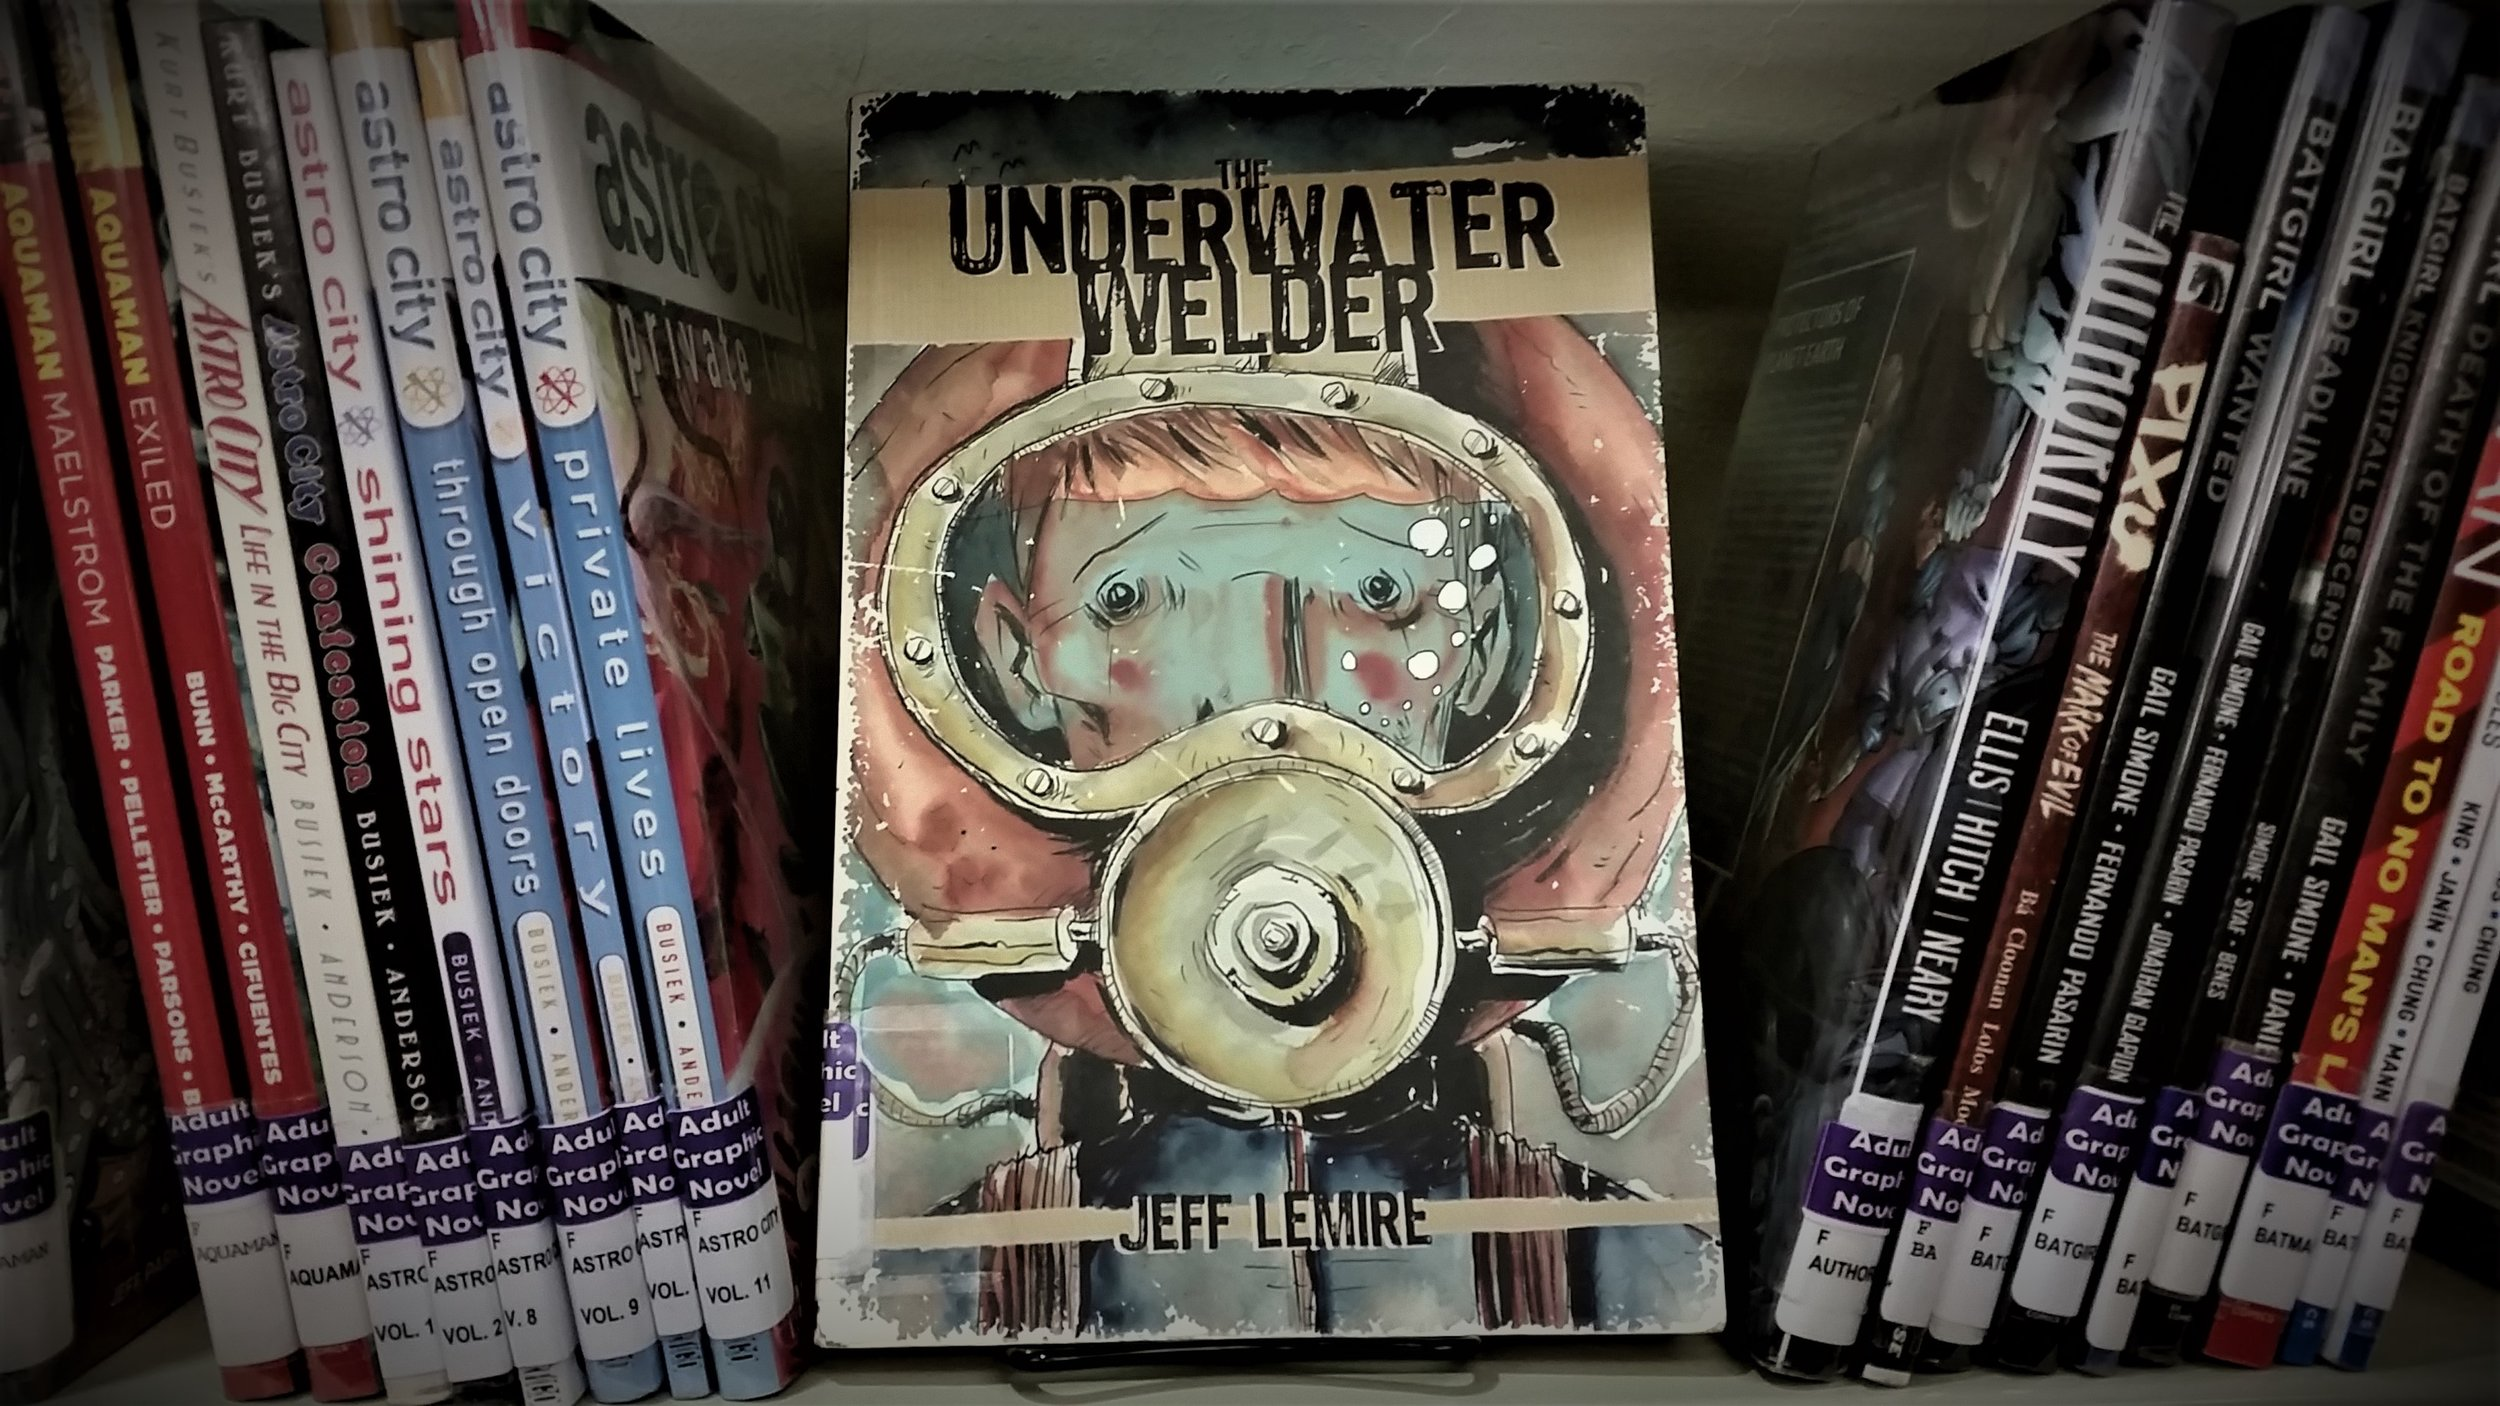 The Underwater Welder Cover Photoby  andhereads.jpg